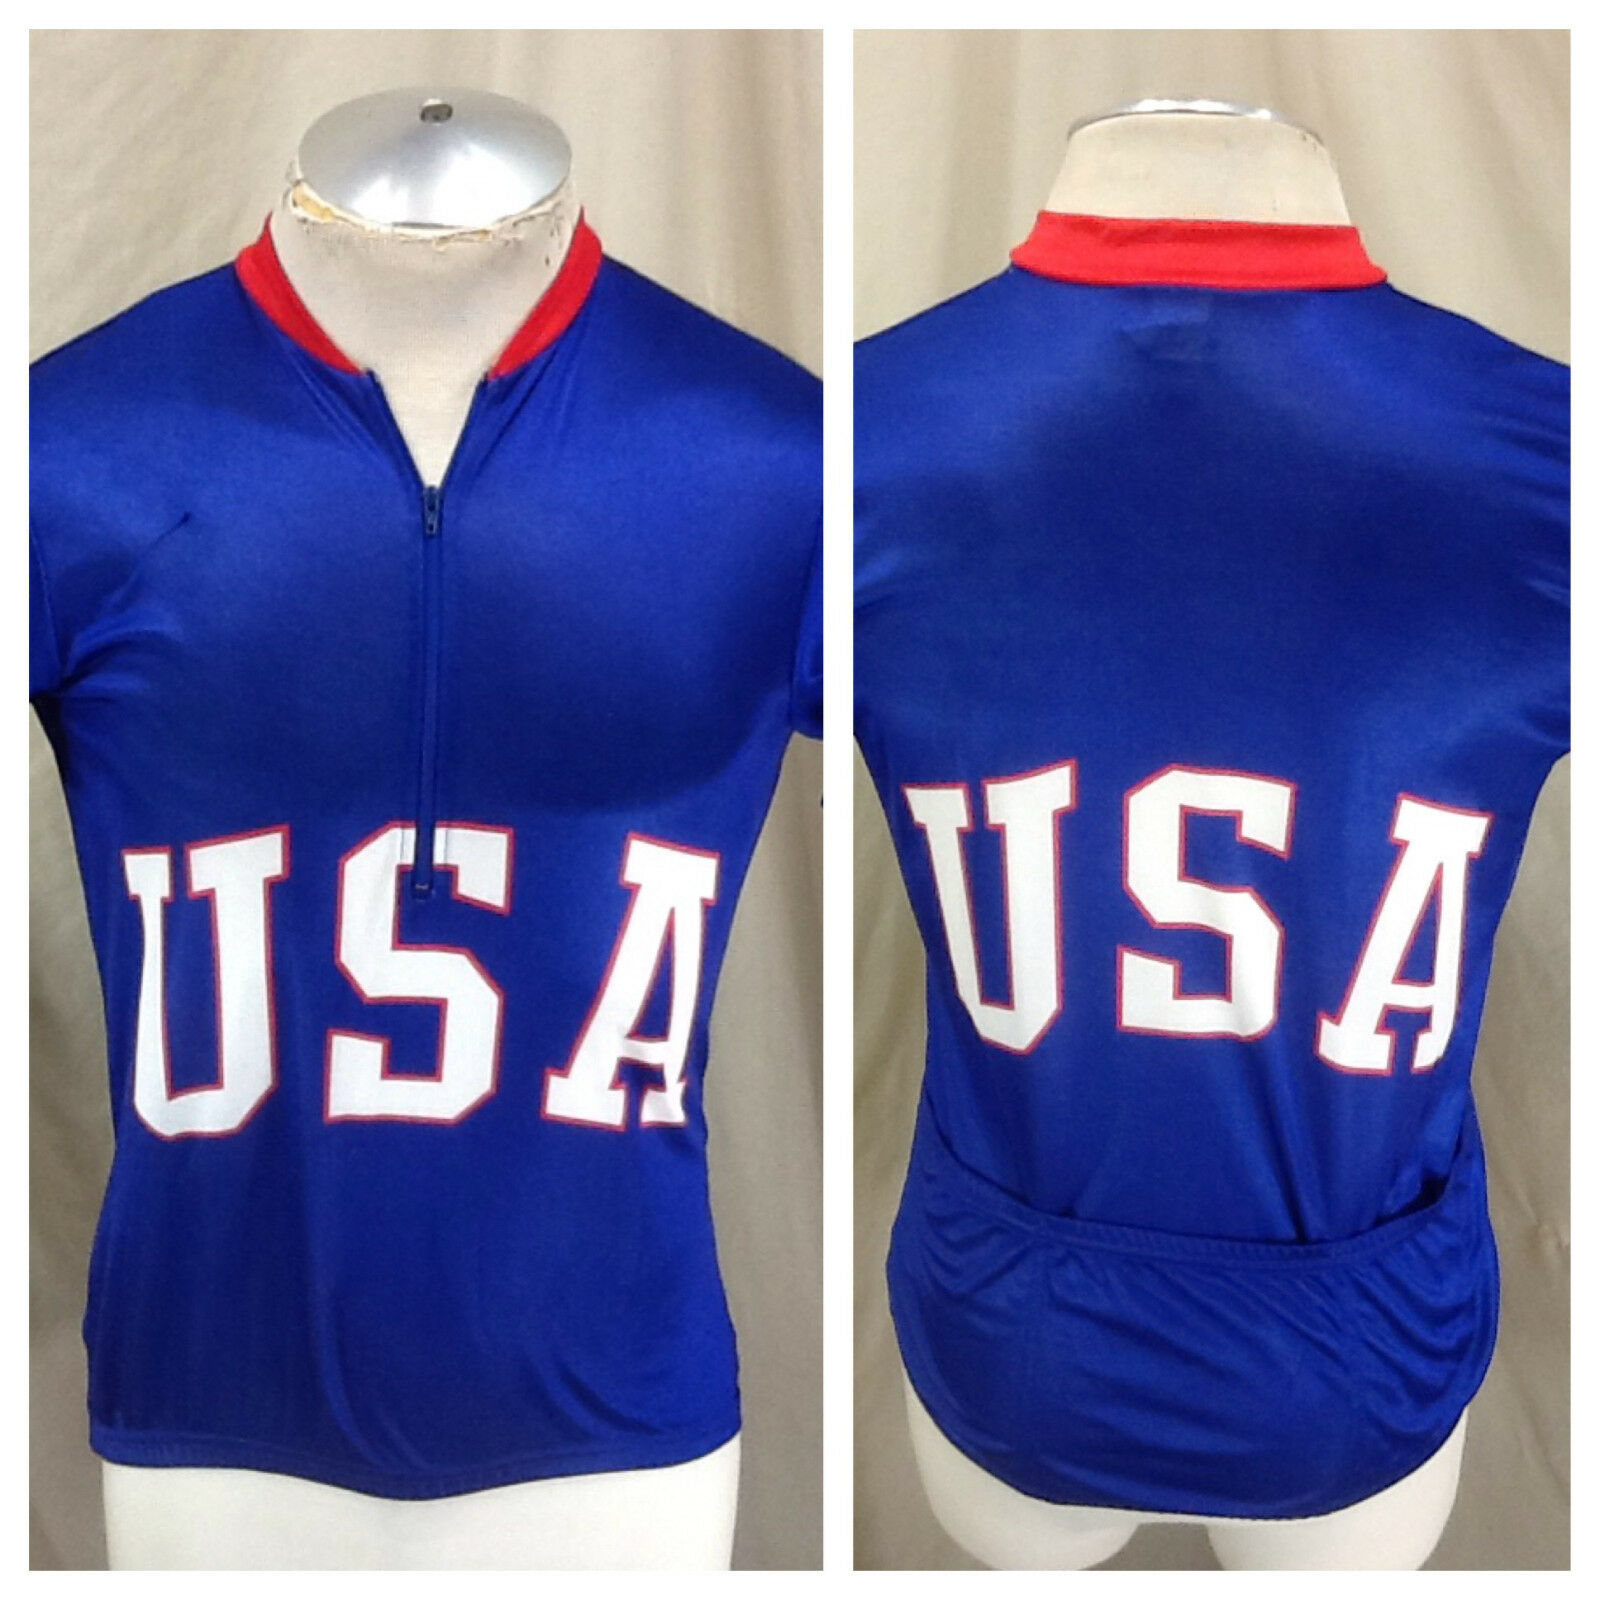 Vintage Canari Team USA Olympics (Medium) 1 2 Zip Up Cycling Race Wear Jersey